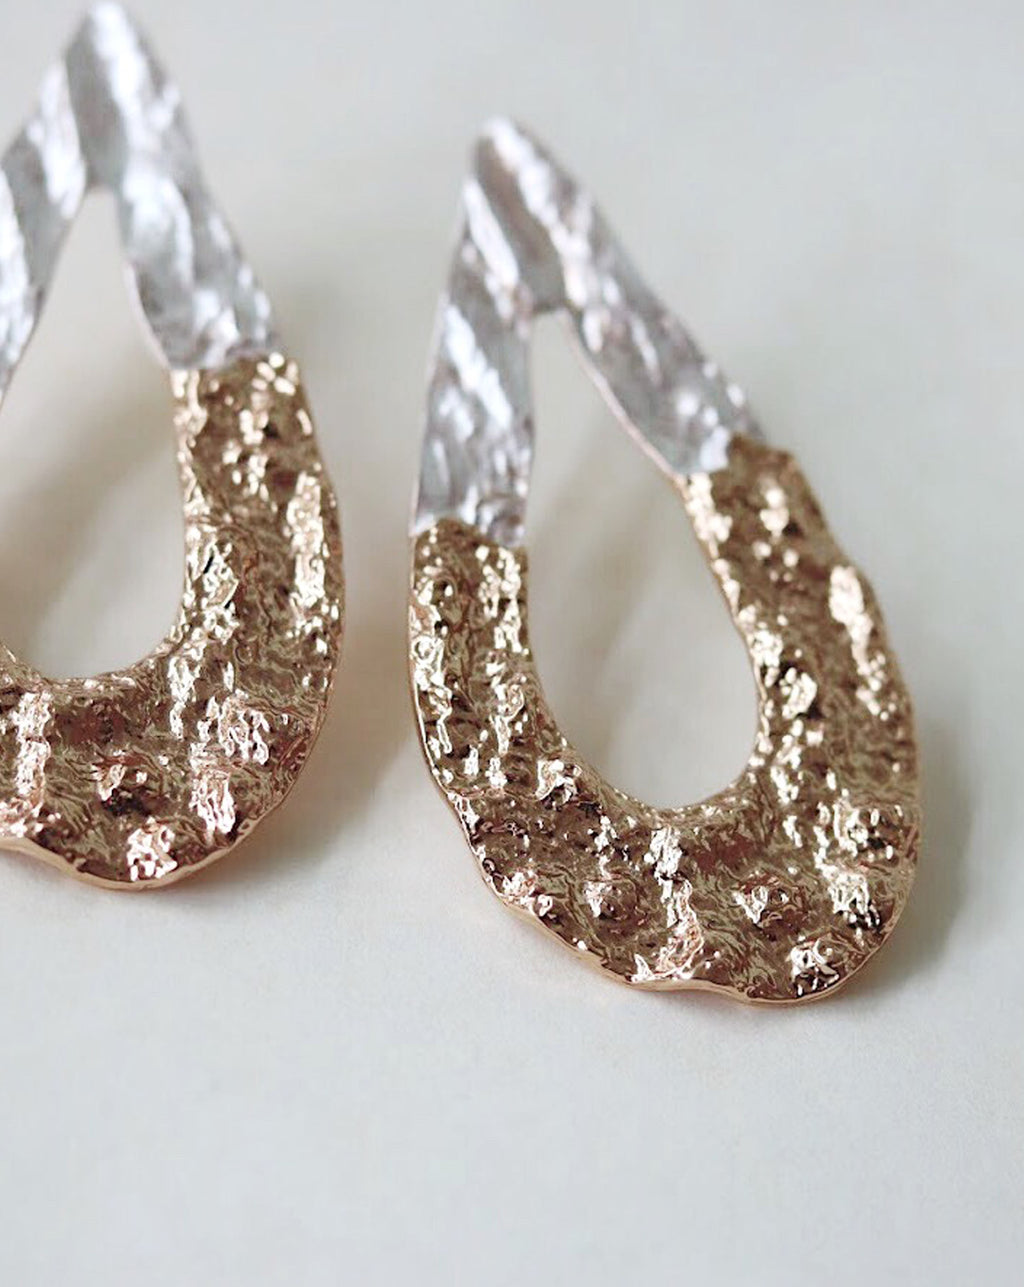 Lava-esque textured earrings in a two-tone gold and silver @thehexad